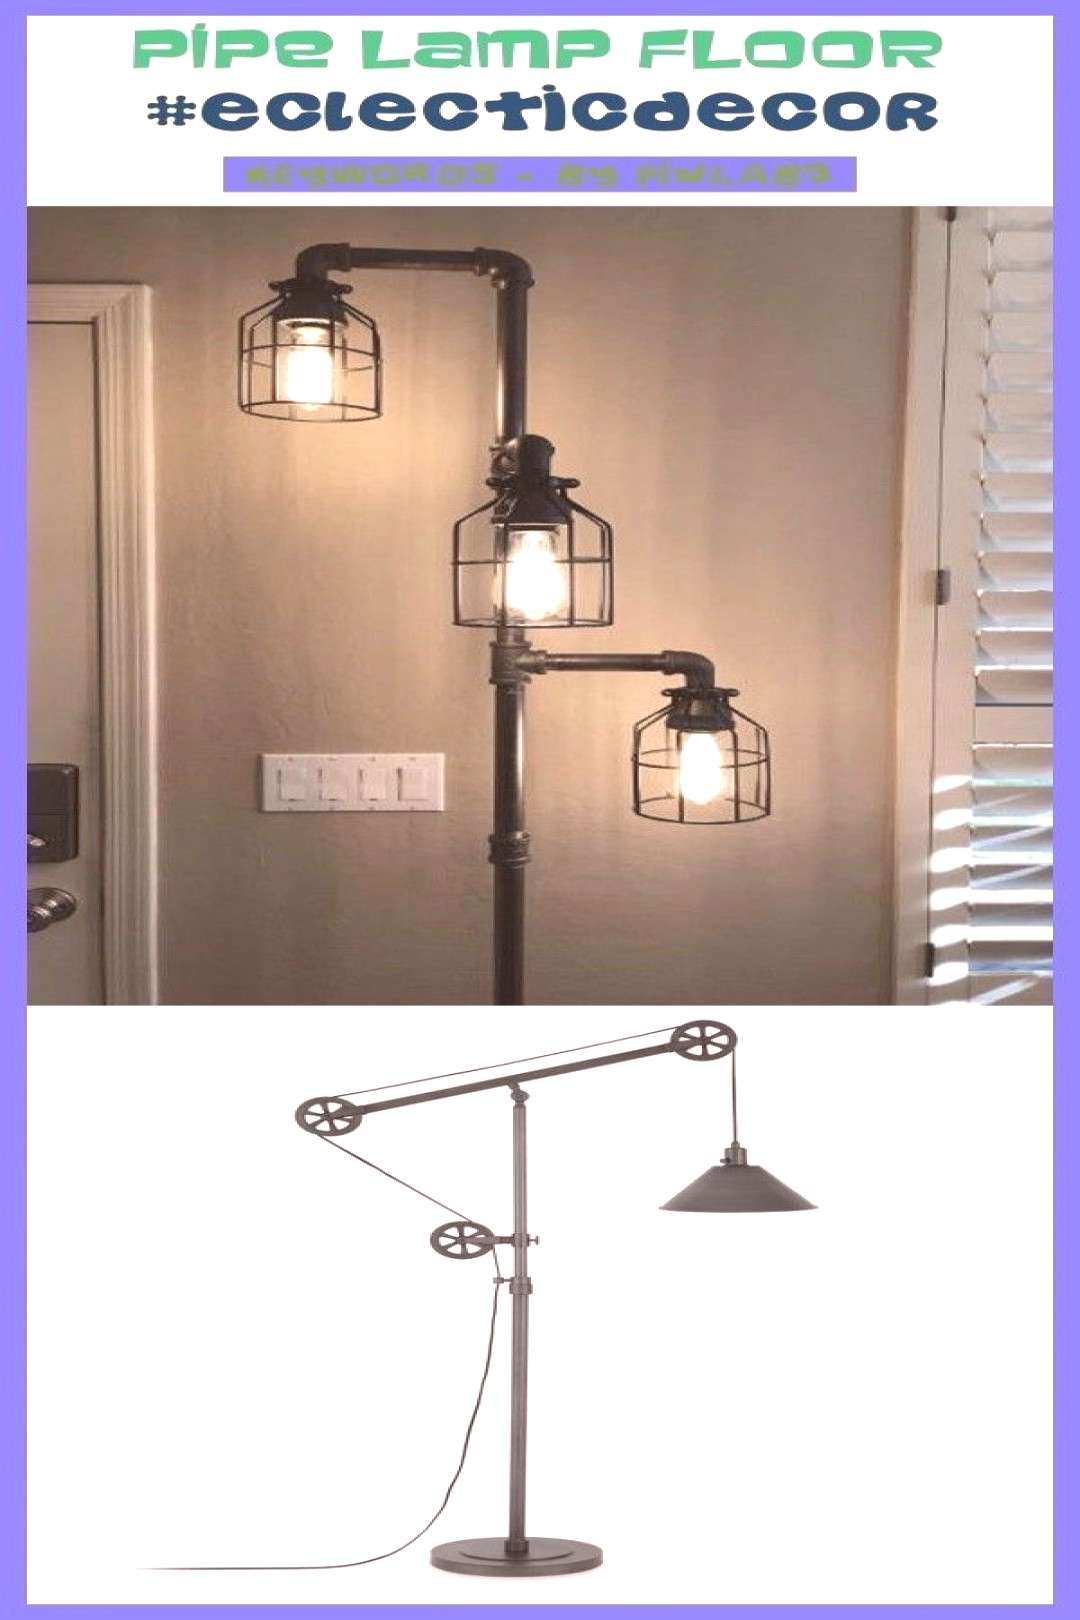 Eclectic decor Pipe lamp dog, Pipe lamp with outlet, Pipe lamp instructions, Pi...#decor